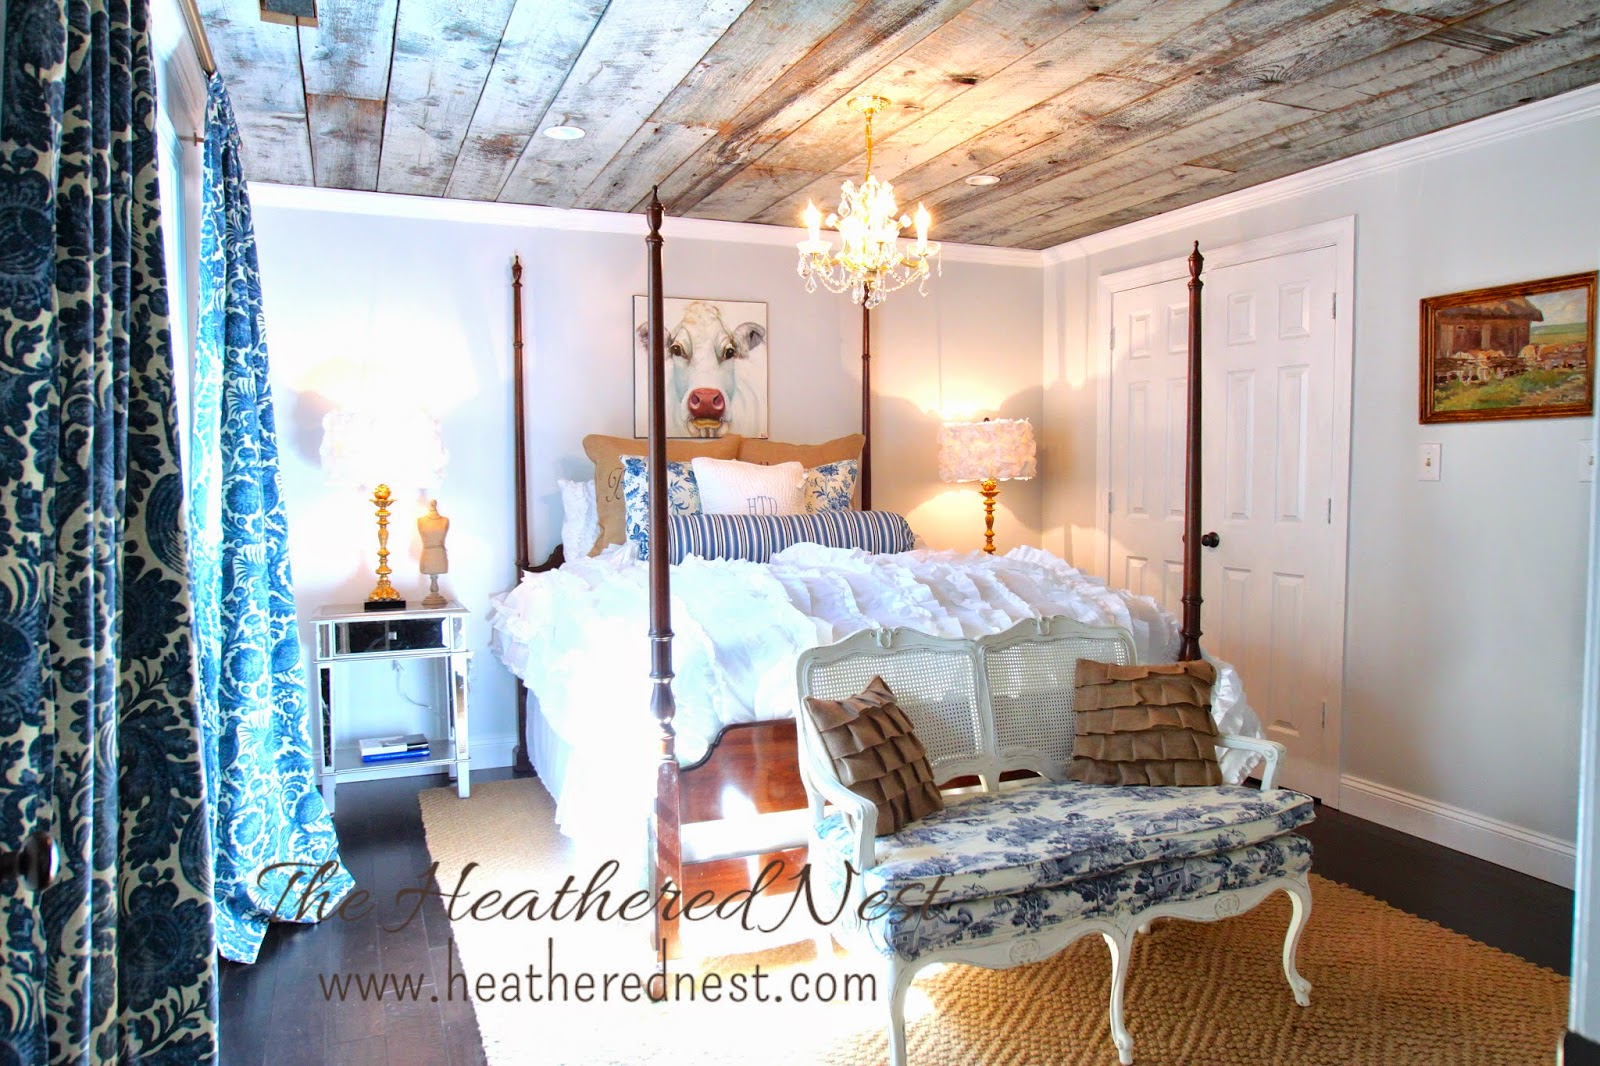 heathered nest guest room, heathered nest modern country bedroom, heathered nest be our guest, urban country design, modern country design, barnboard ceiling, toile, burlap, sisal rug